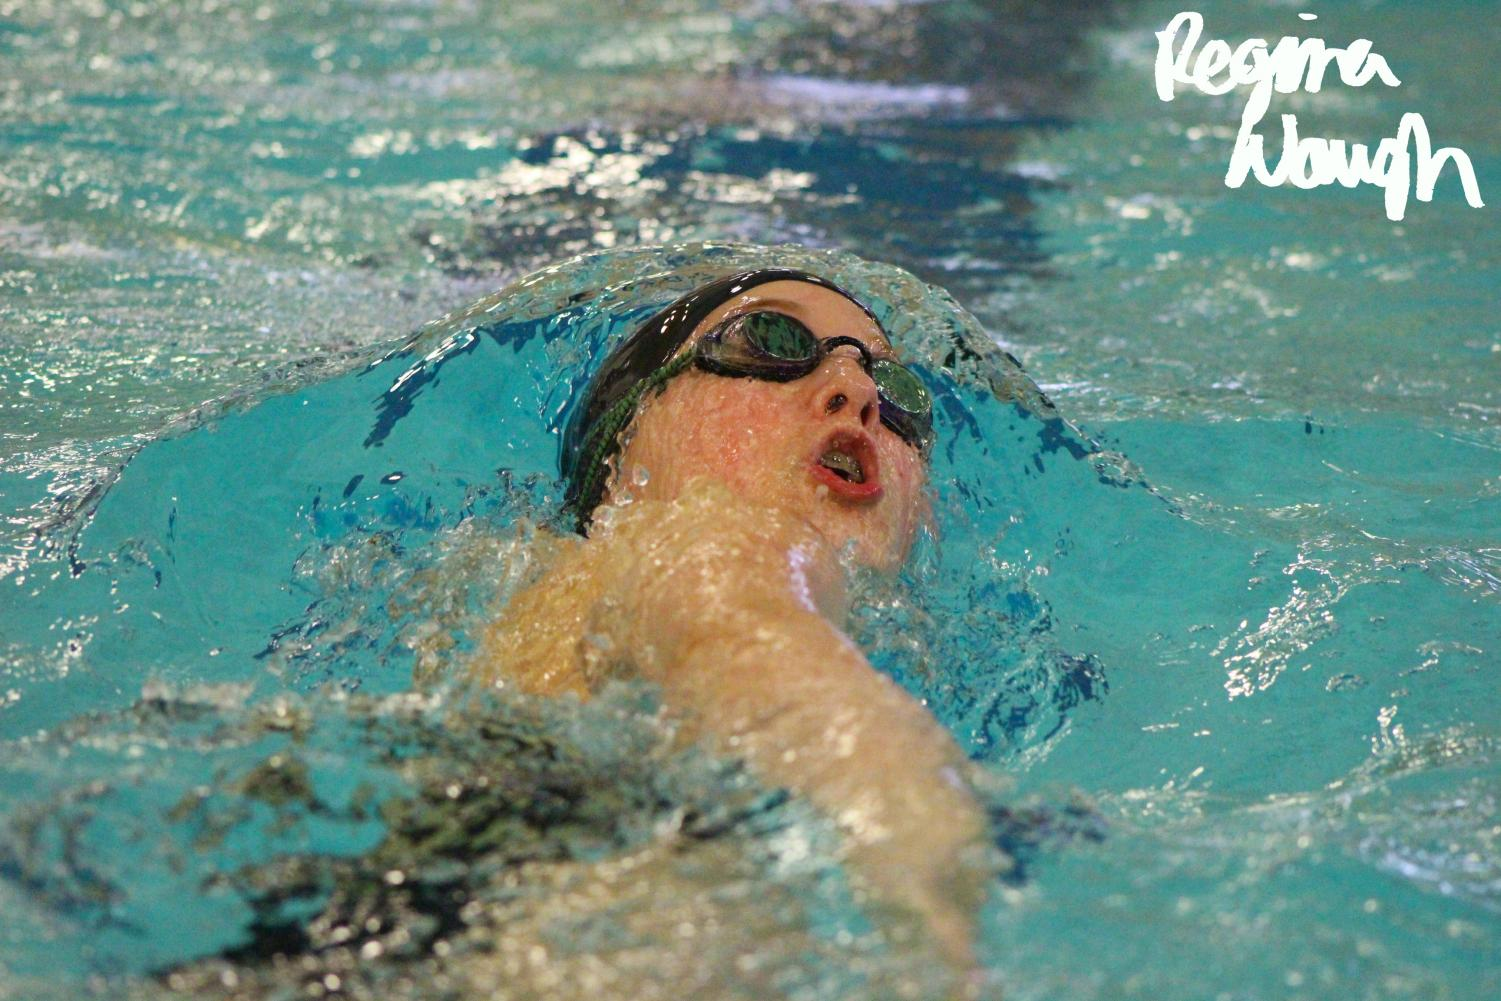 Sophomore+Addi+Karsak+coming+up+to+the+surface+of+the+water+while+swimming+backstroke.